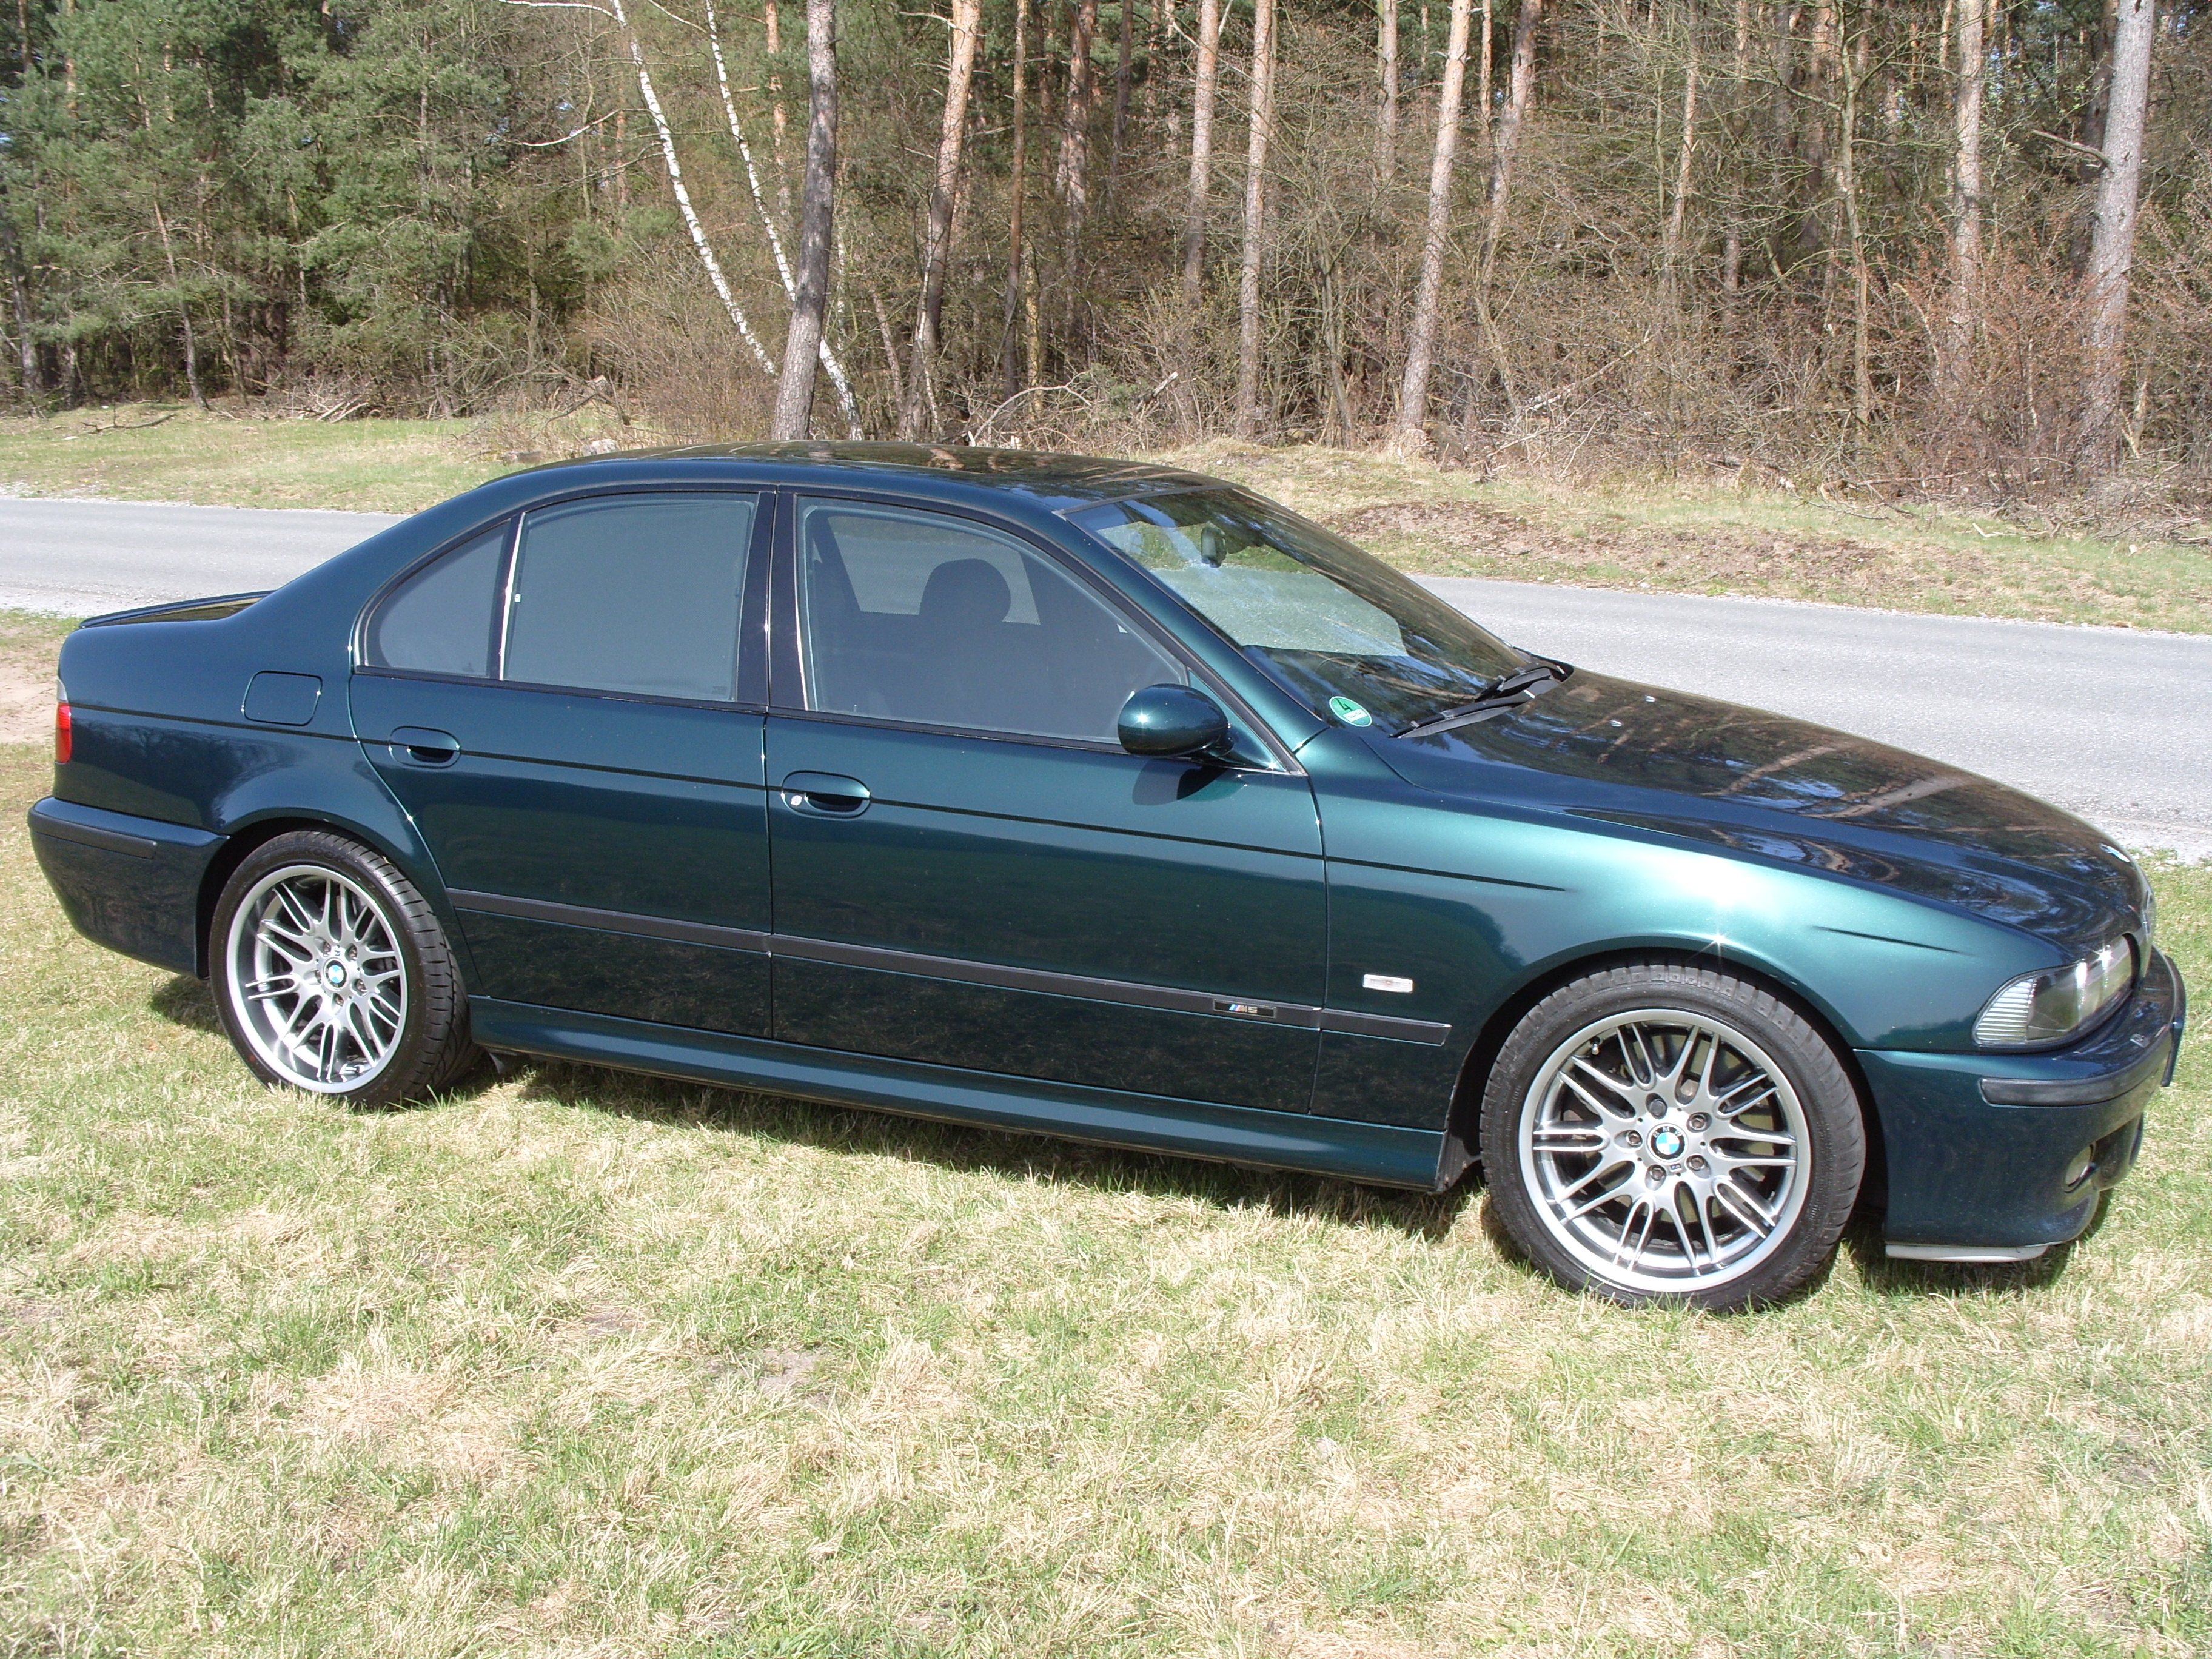 Oxford Green E39 M5 Decent Pics At Last-s1050181.jpg